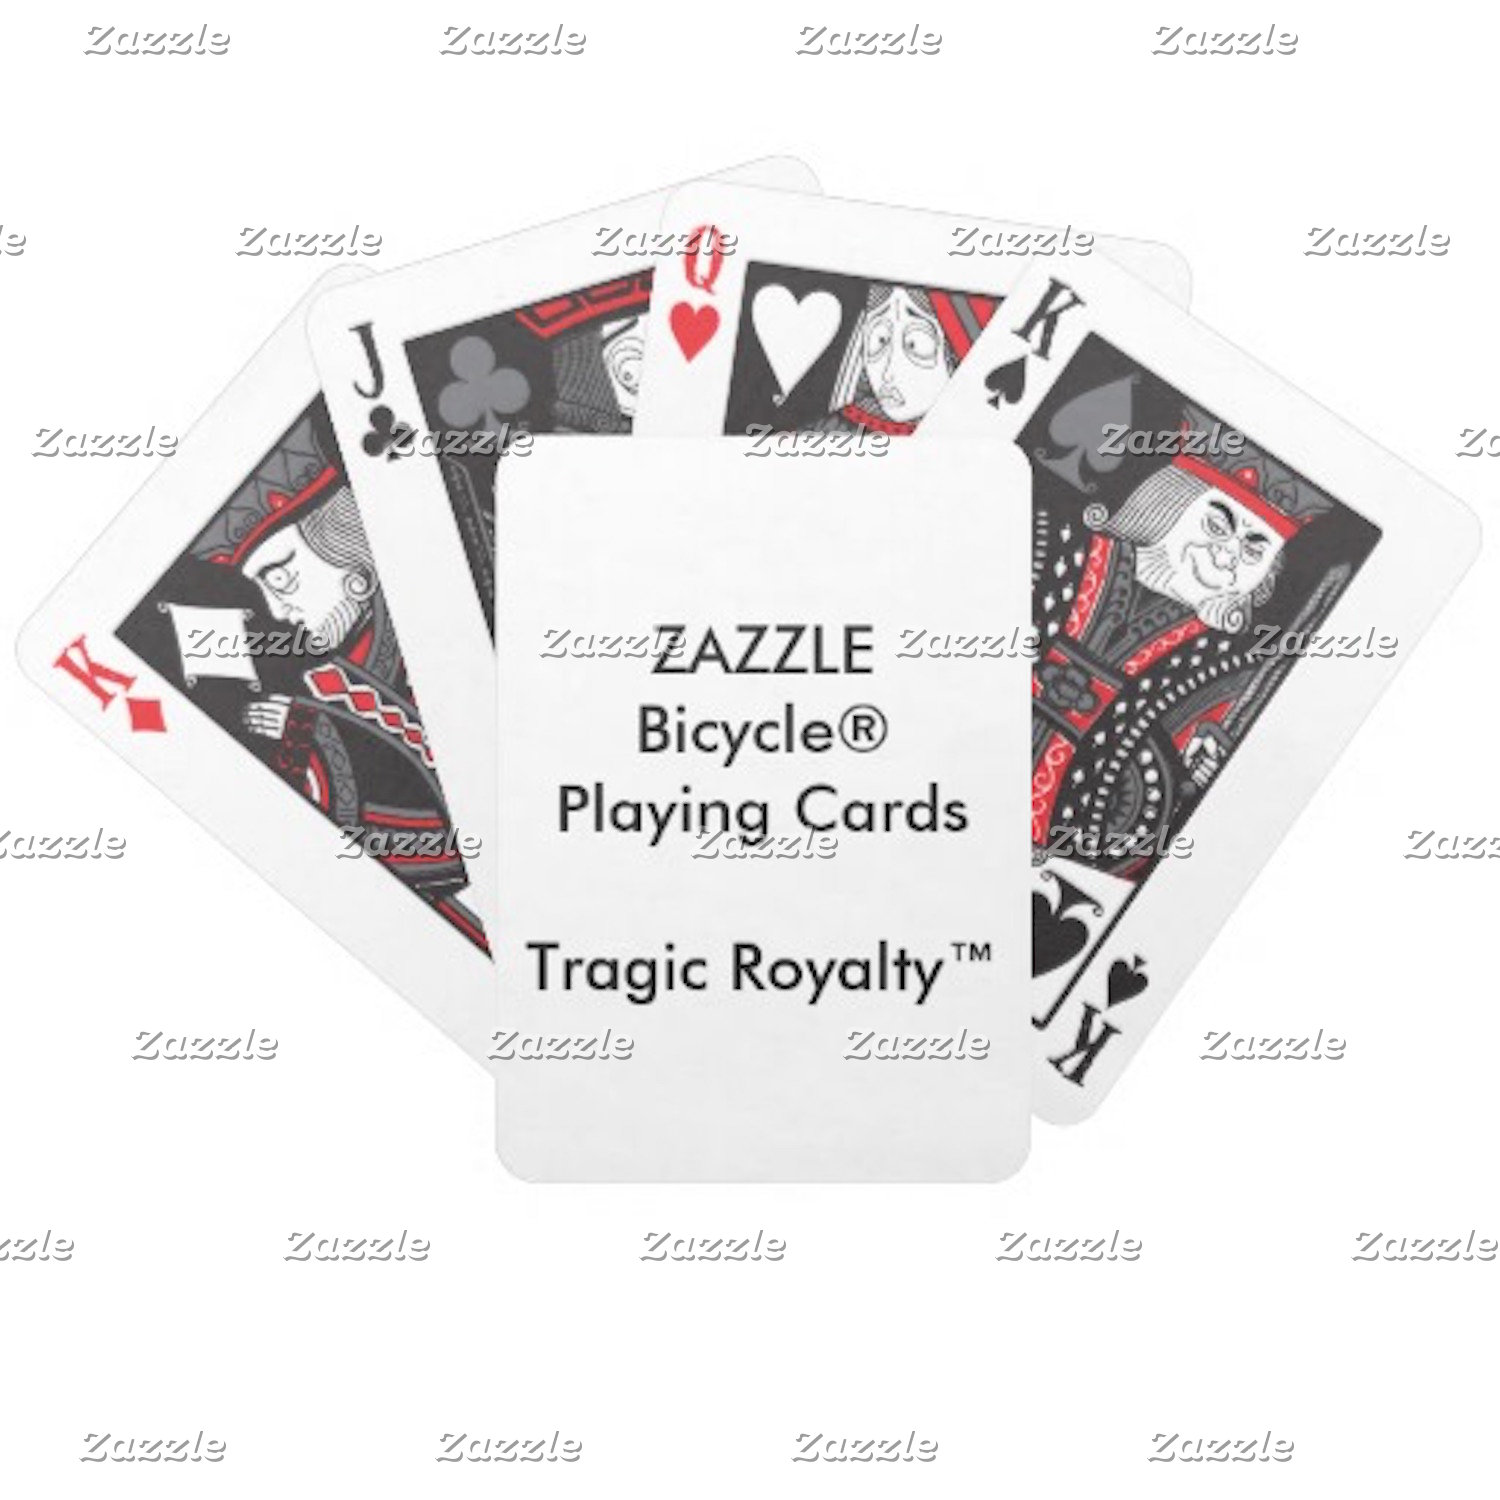 Bicycle® Tragic Royalty™